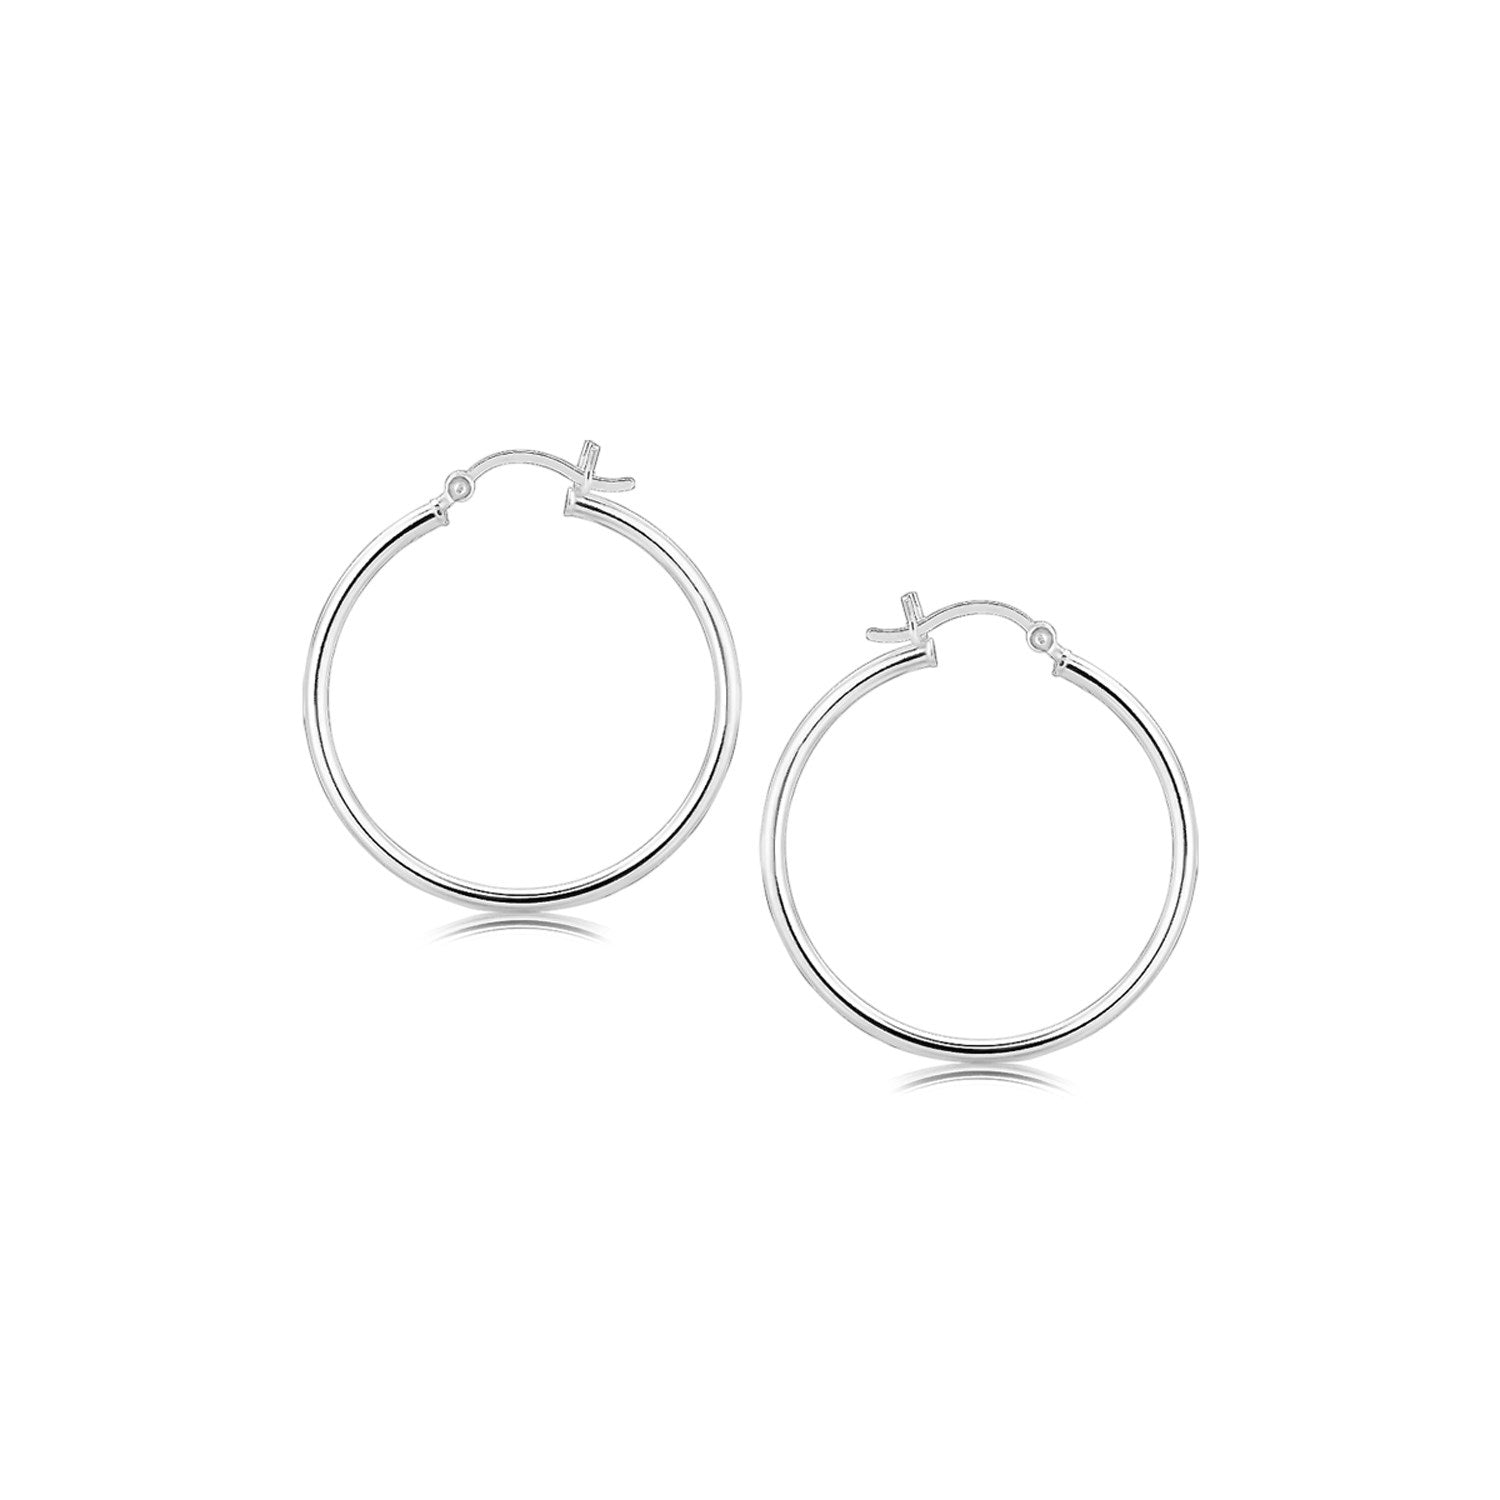 Unique Modern Paris Style Sterling Silver Thin Polished Hoop Style Earrings with Rhodium Plating (30mm)